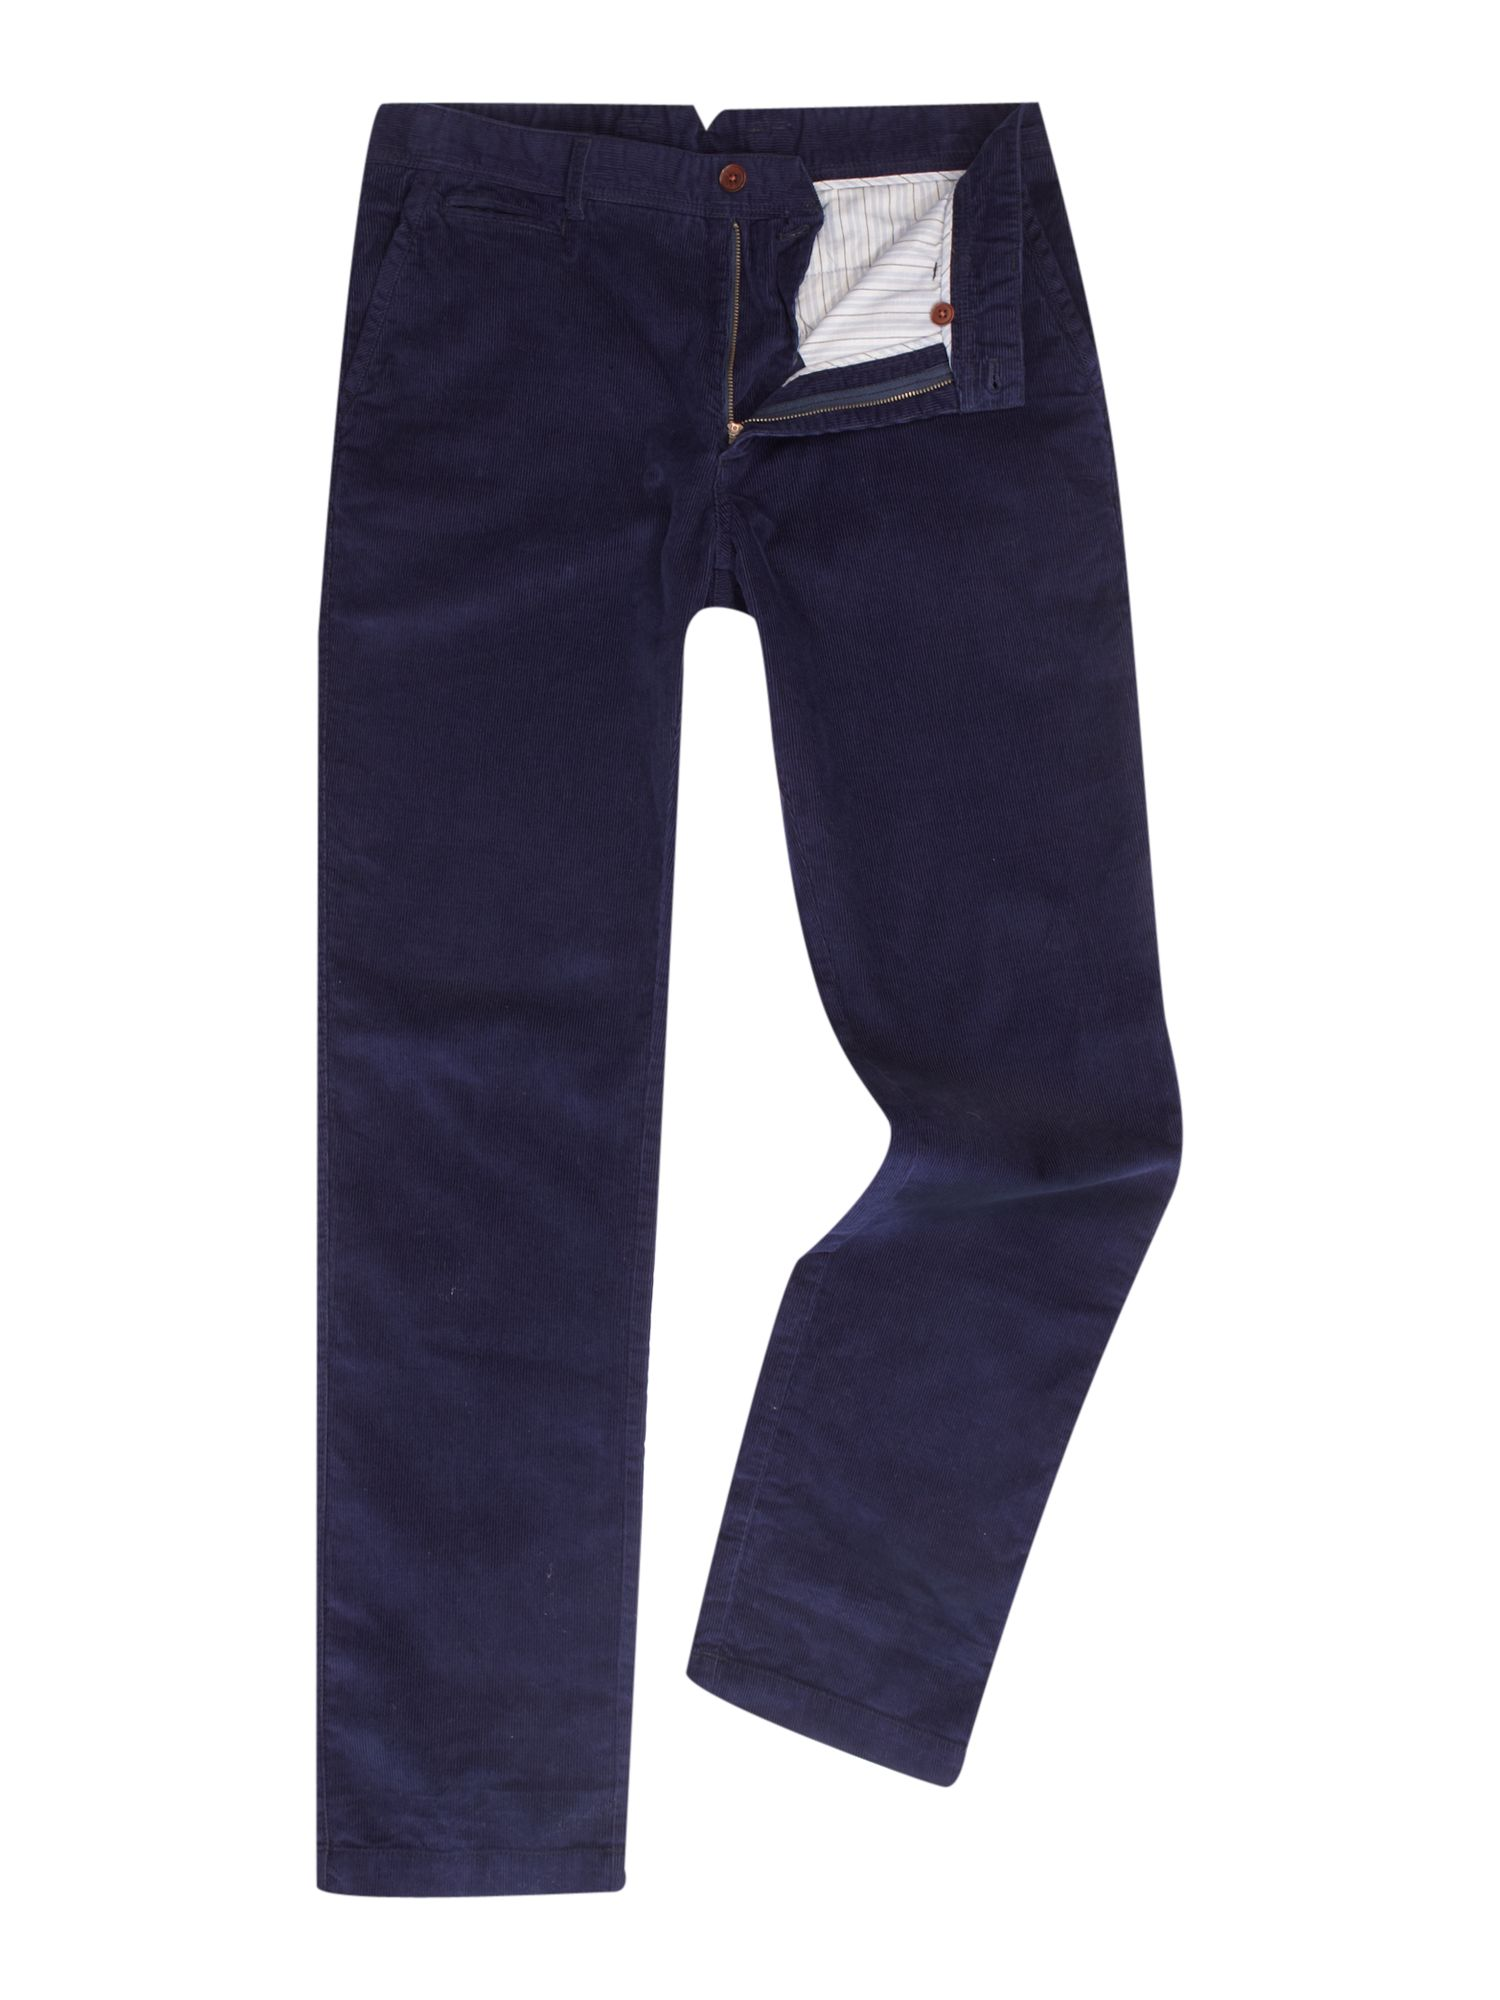 Wells corduroy trousers